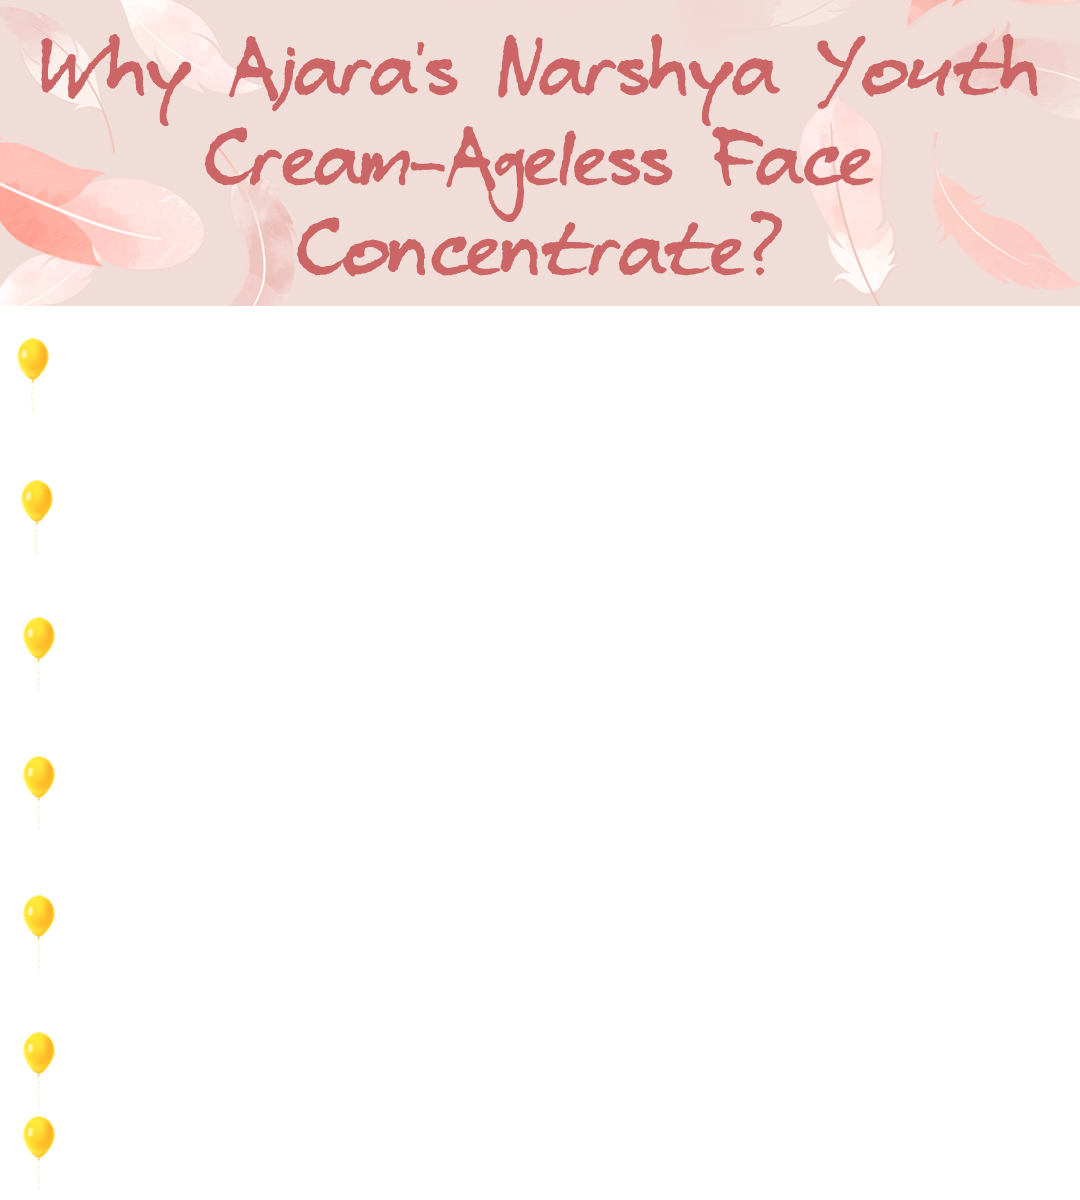 Narshya Youth Cream - What makes it a one-of-a-kind?